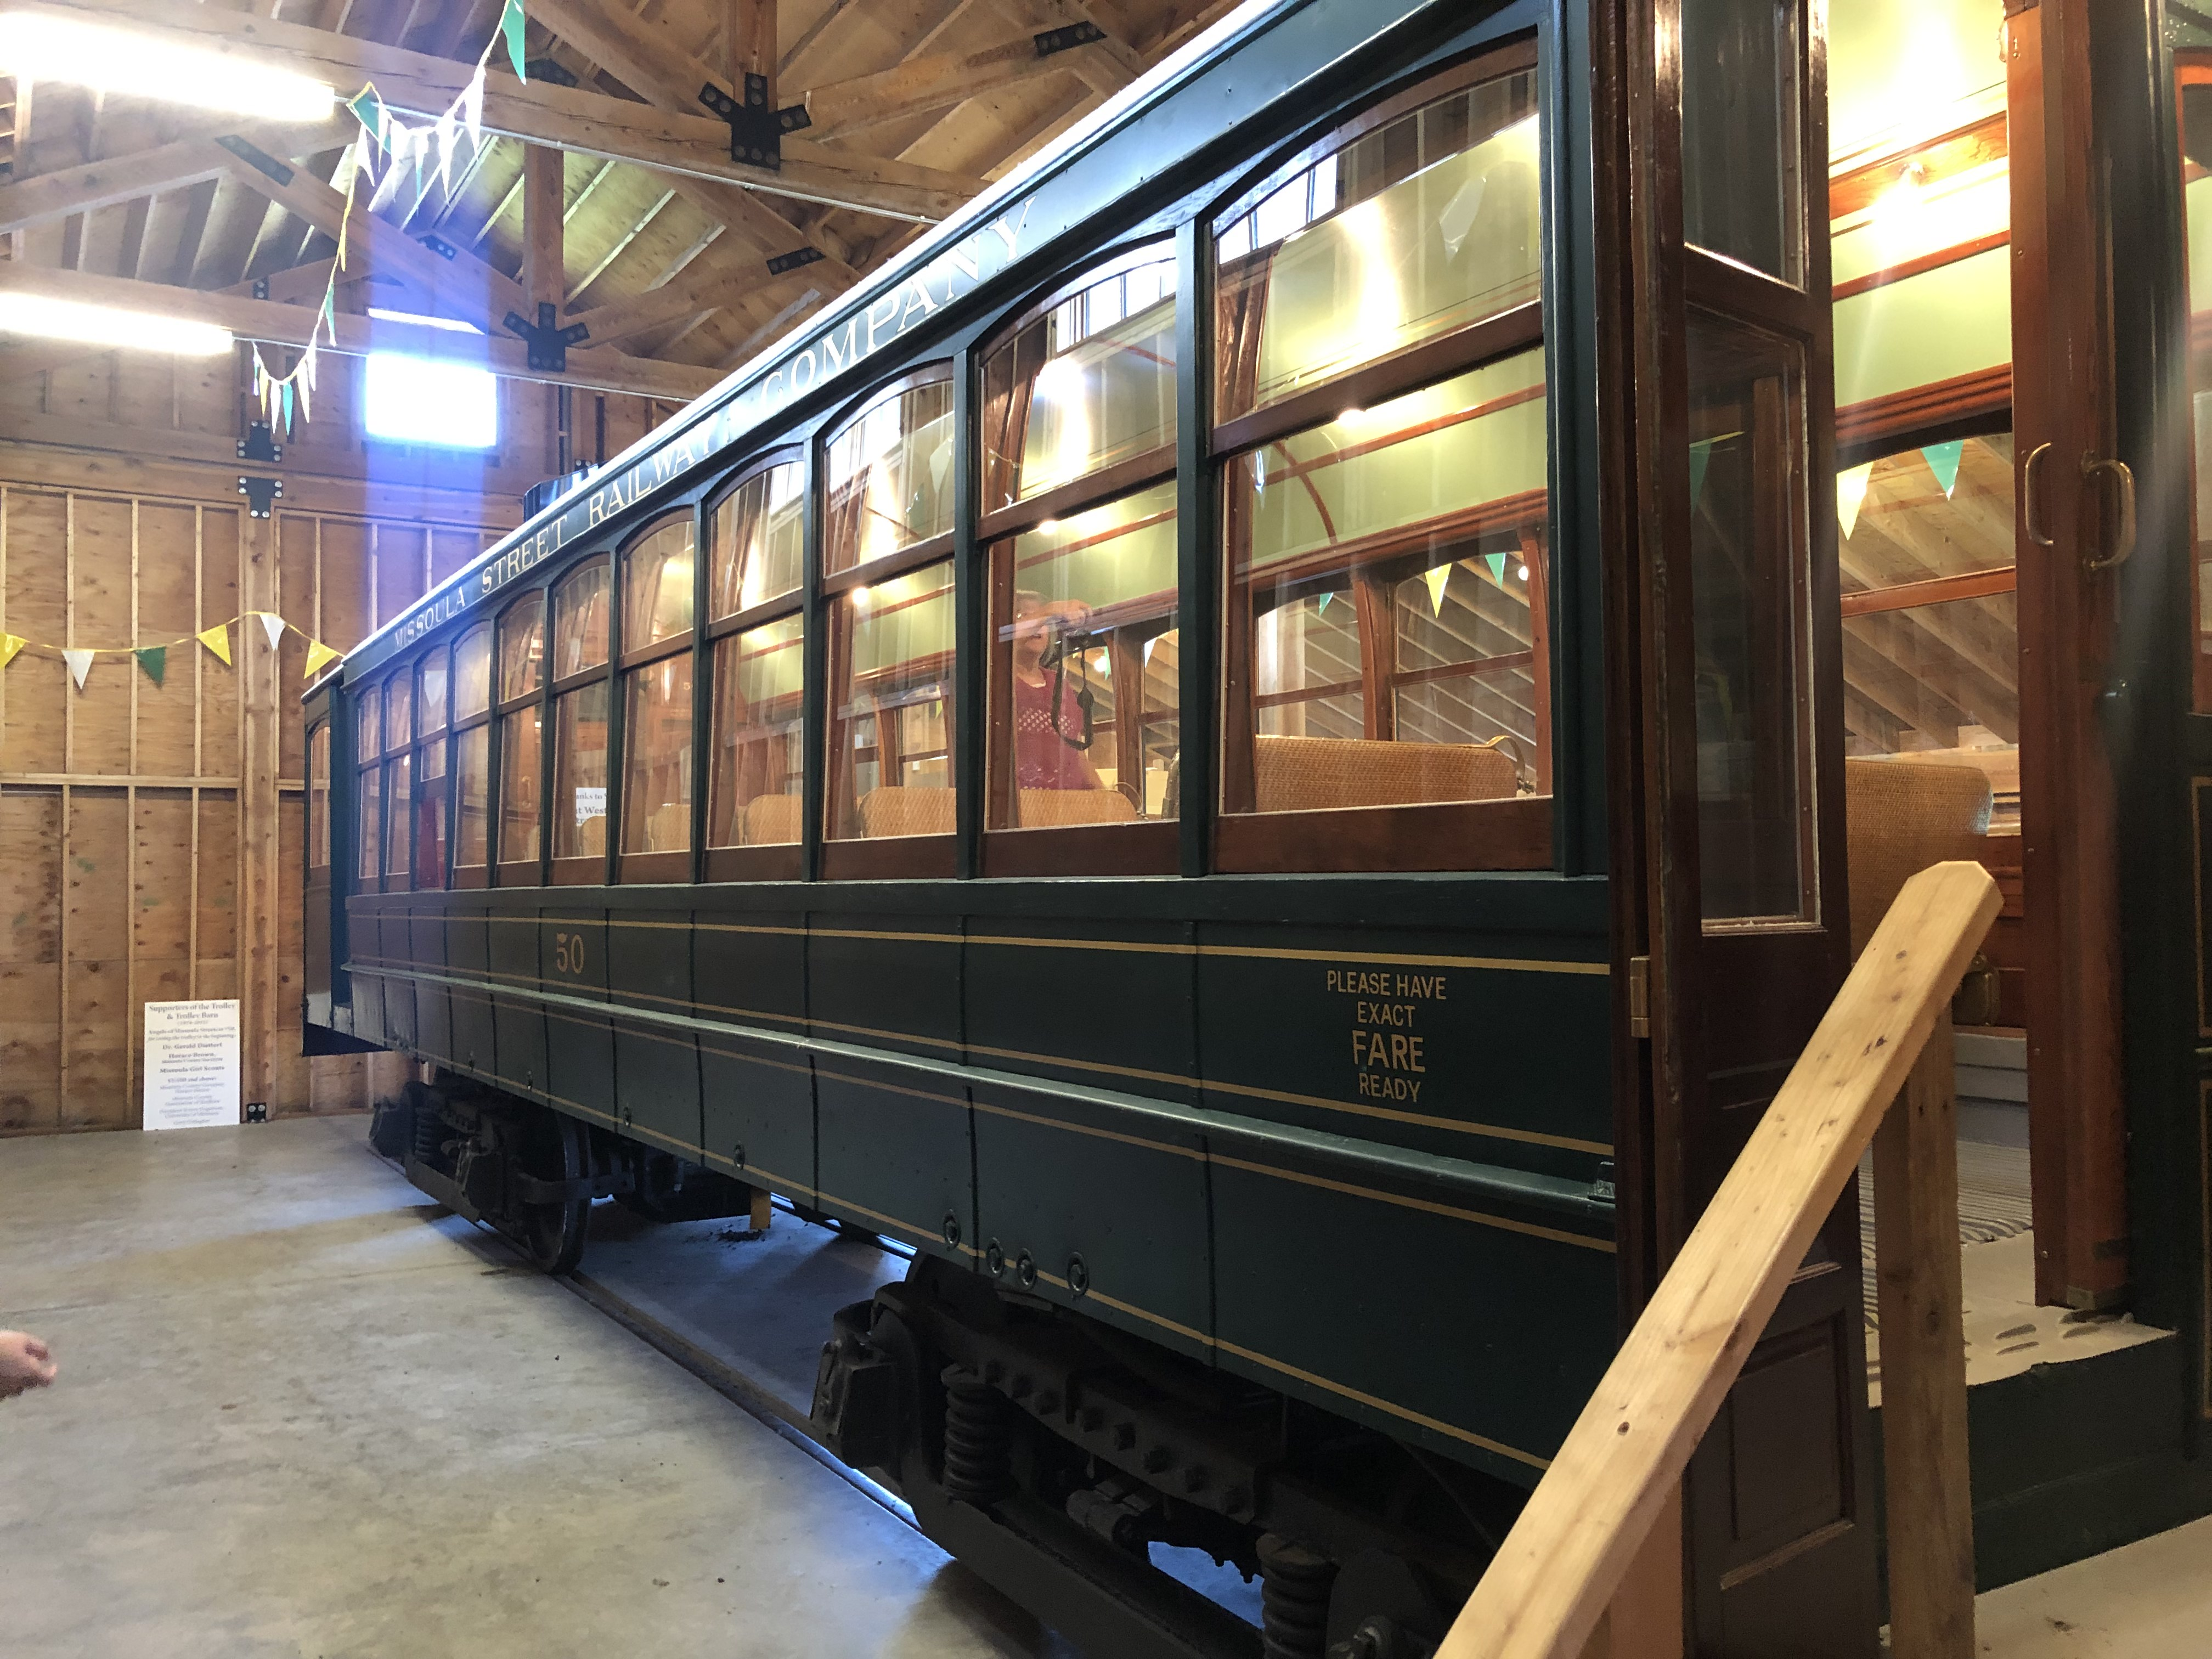 Streetcar No.50, one of the last remaining Missoulain streetcars on display at Fort Missoula.